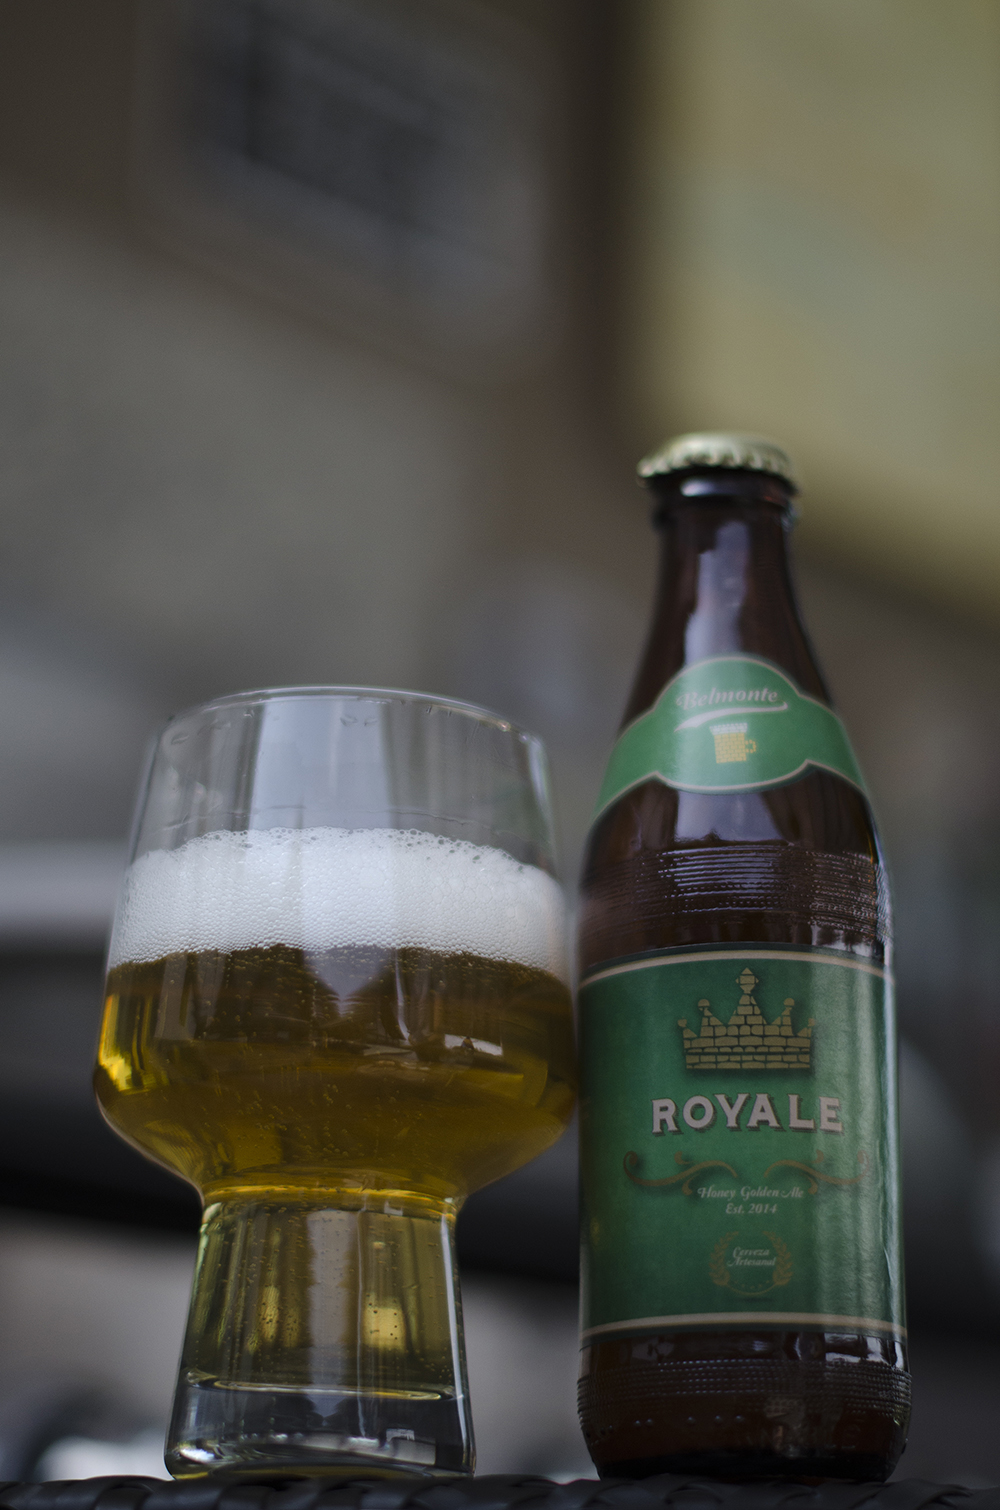 Belmonte Brewery  - Royale  Honey Golden Ale  5,5%